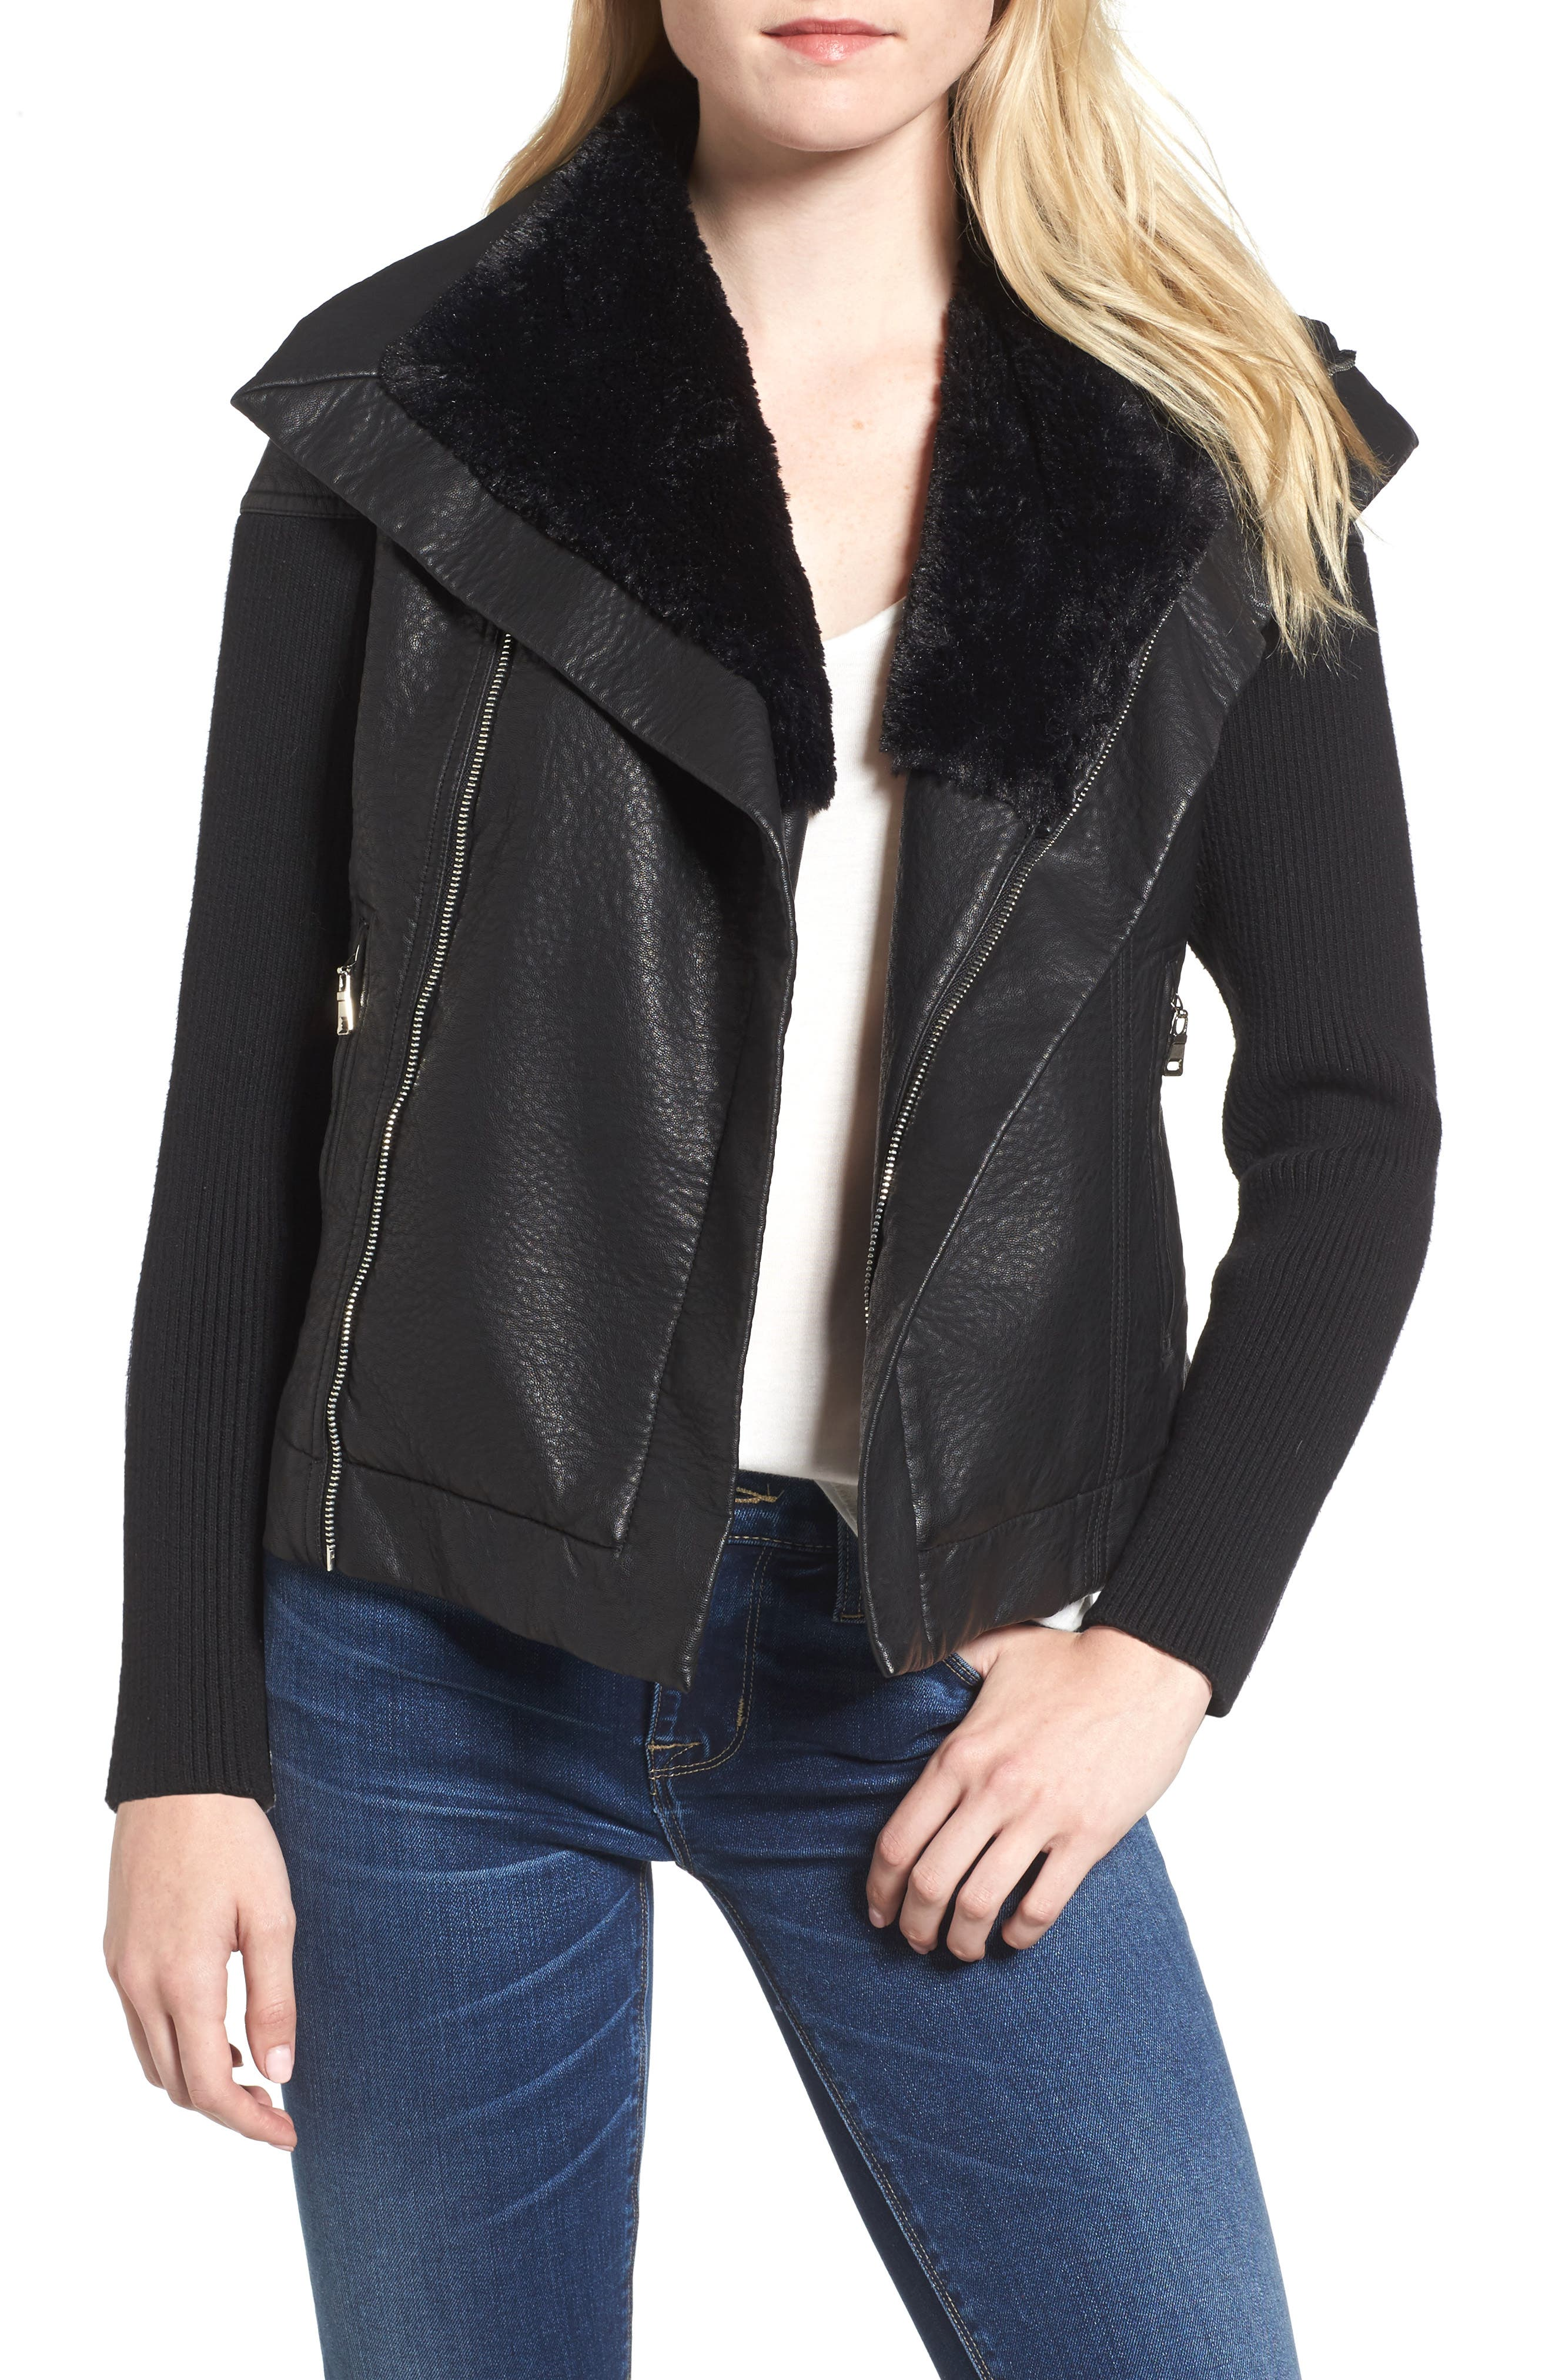 Alternate Image 1 Selected - Love Token Faux Leather Jacket with Faux Fur Trim